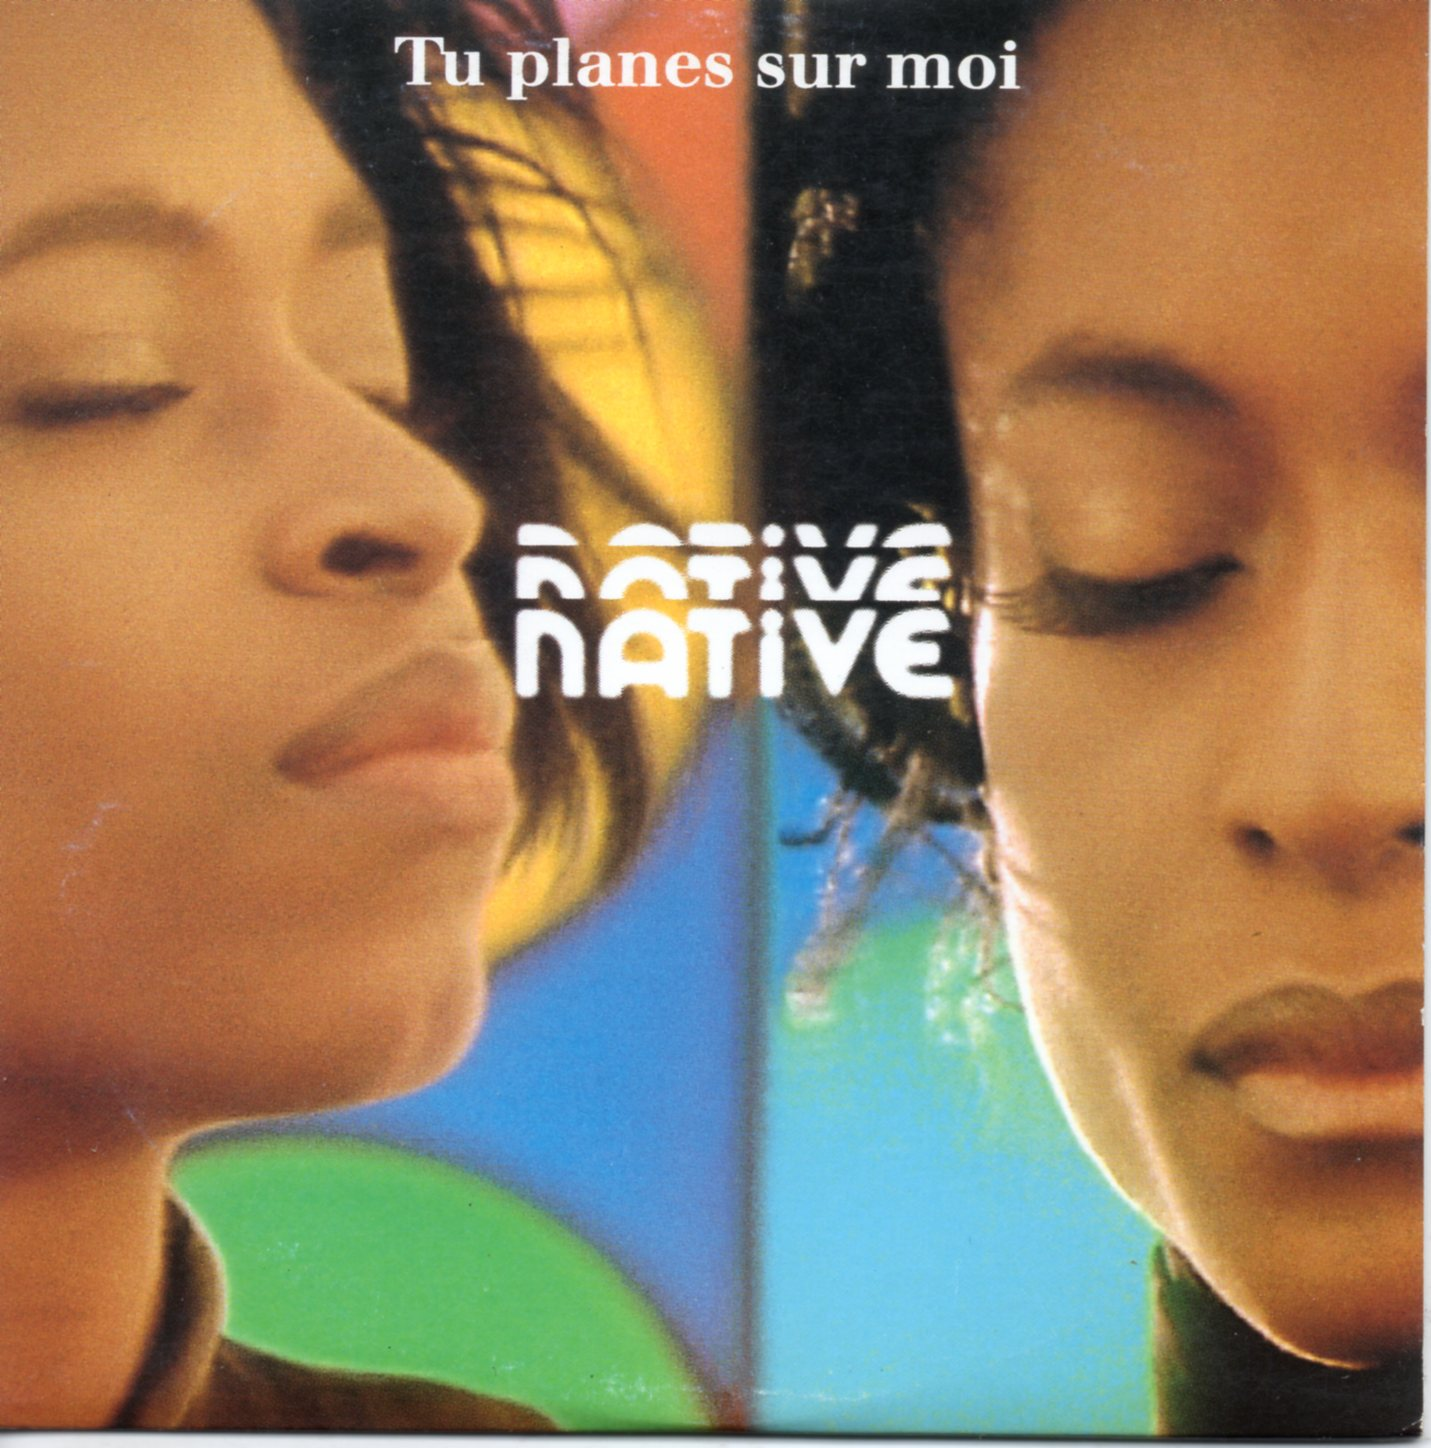 NATIVE - Tu planes pour moi 2-Track CARD SLEEVE - CD single